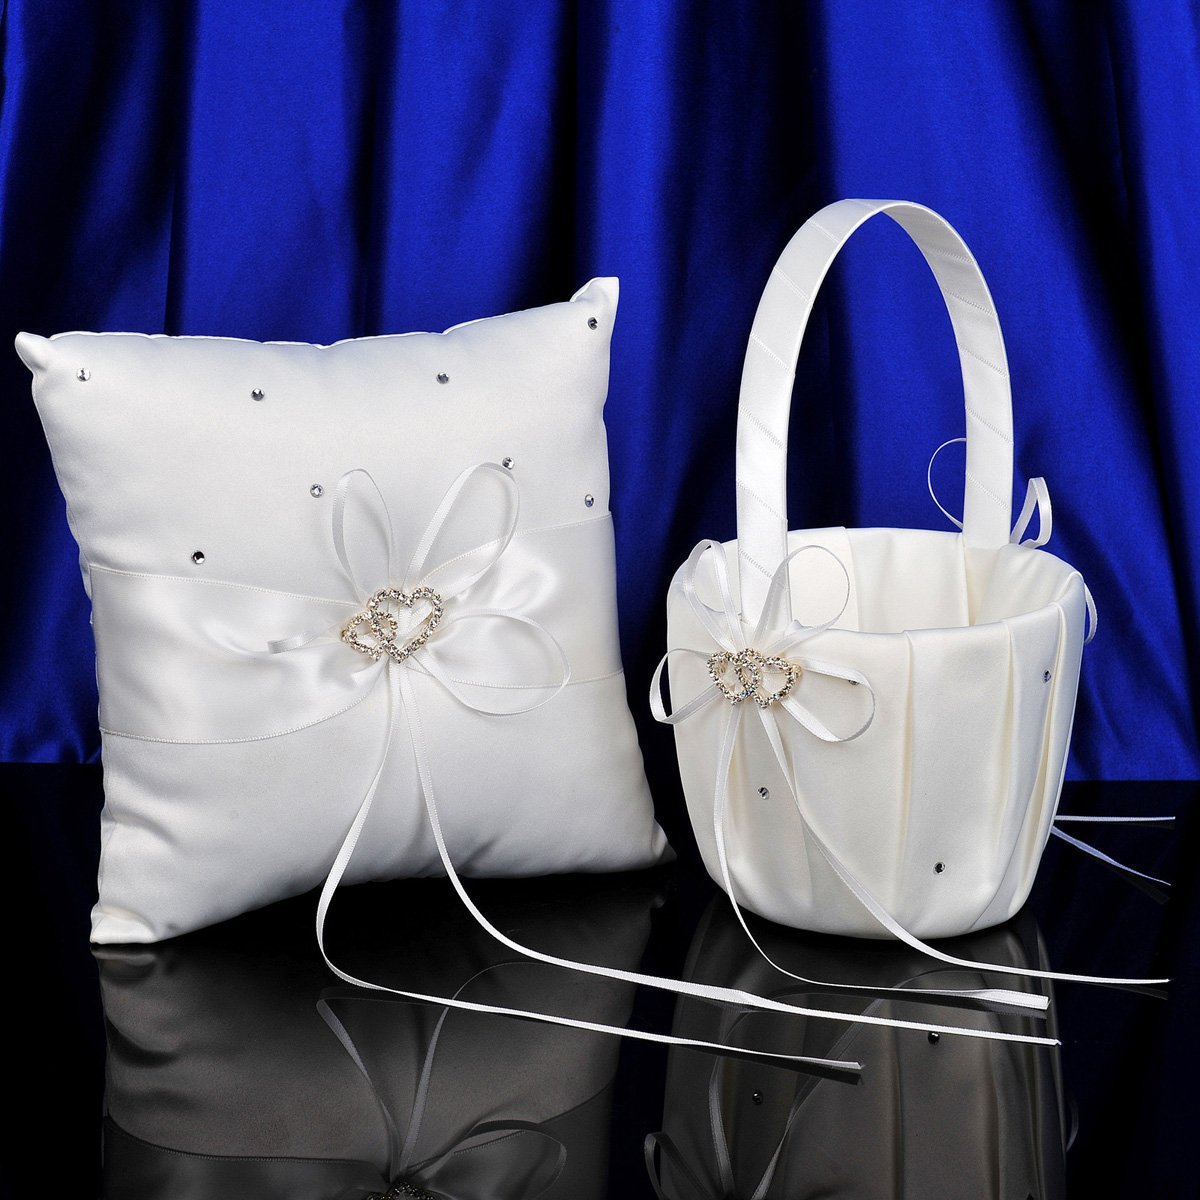 Remedios 2 Heart Rhinestones Ivory Satin Flower Girl Basket and Ring Pillow Set